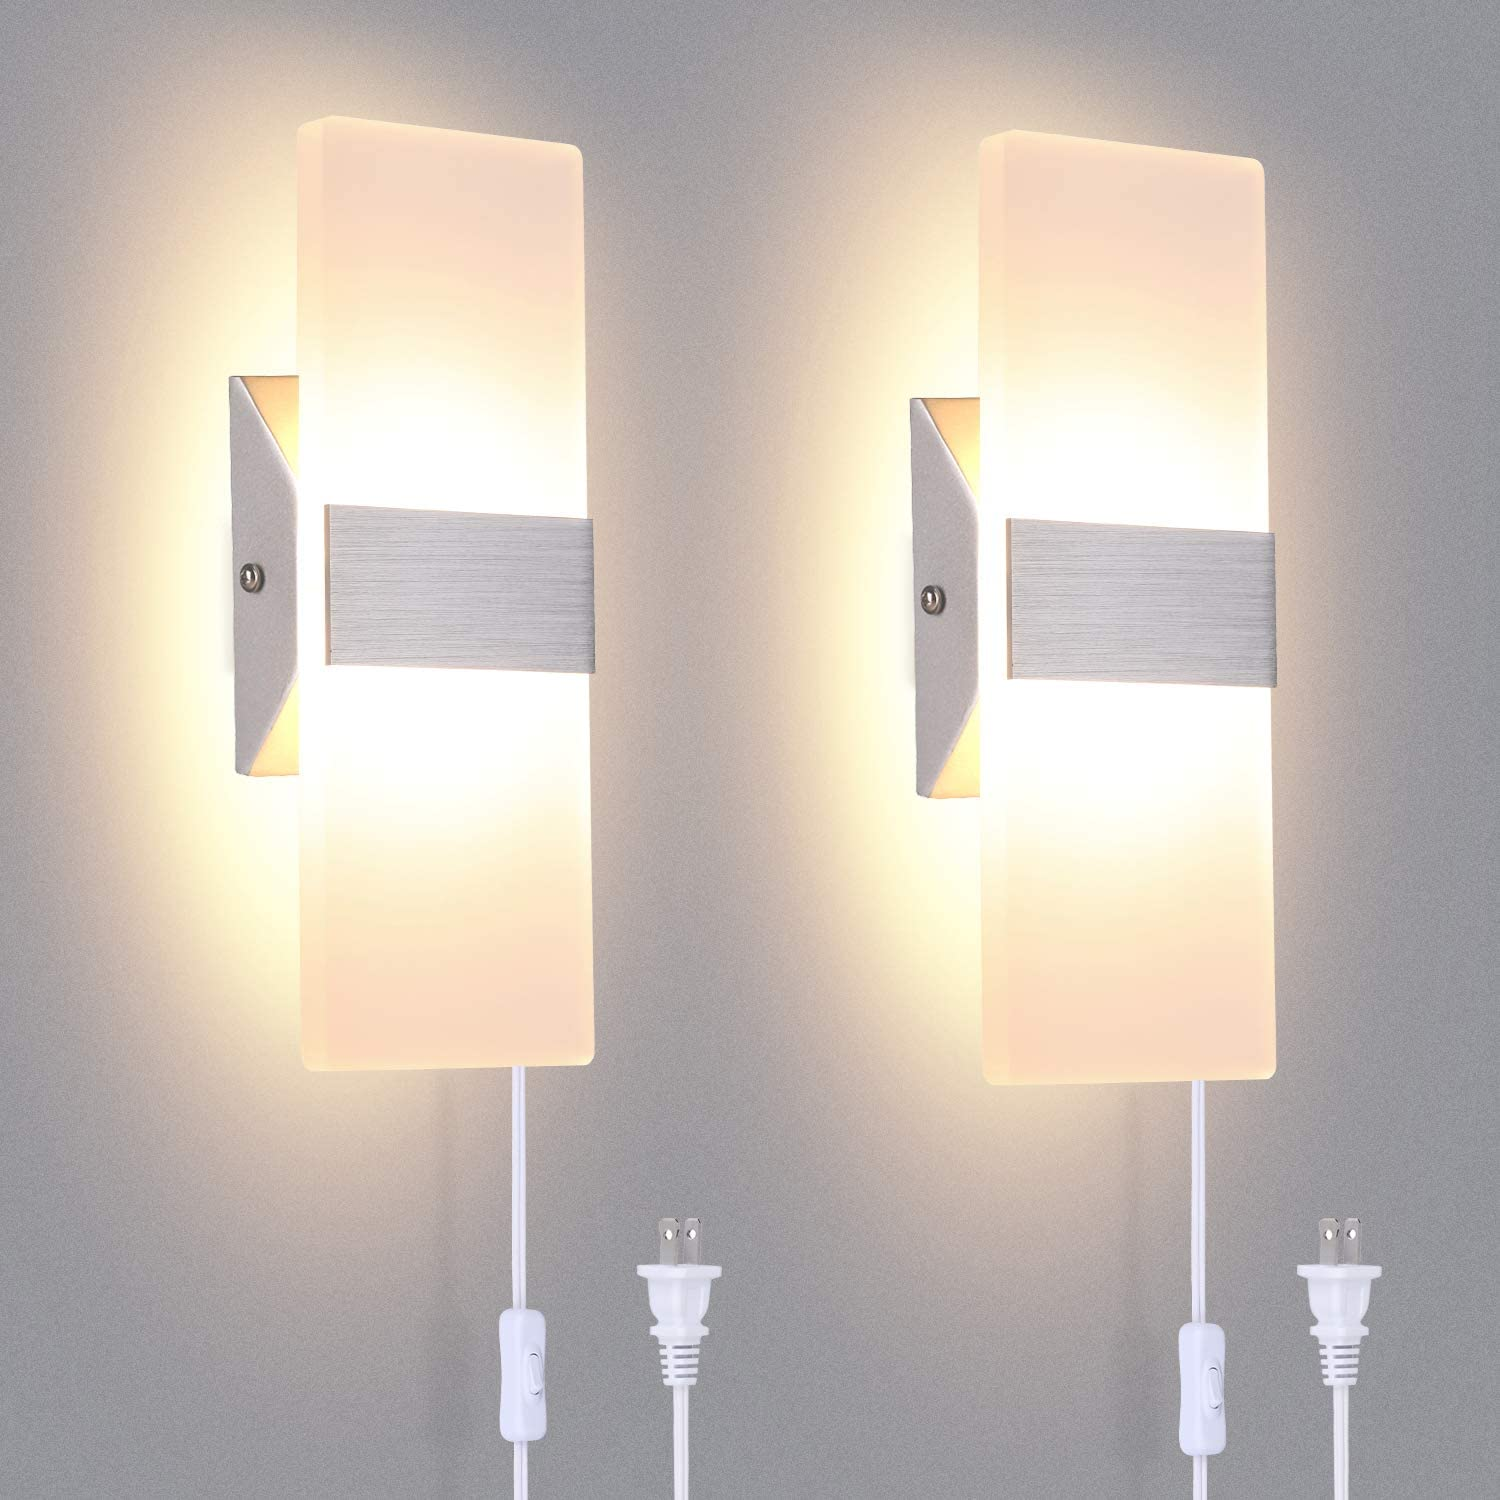 TRLIFE Modern Wall Sconces Set of 2, Plug in Wall Sconces 12W 3000K Warm White Acrylic Wall Sconce Lighting with 6FT Plug in Cord and On/Off Switch on The Cord